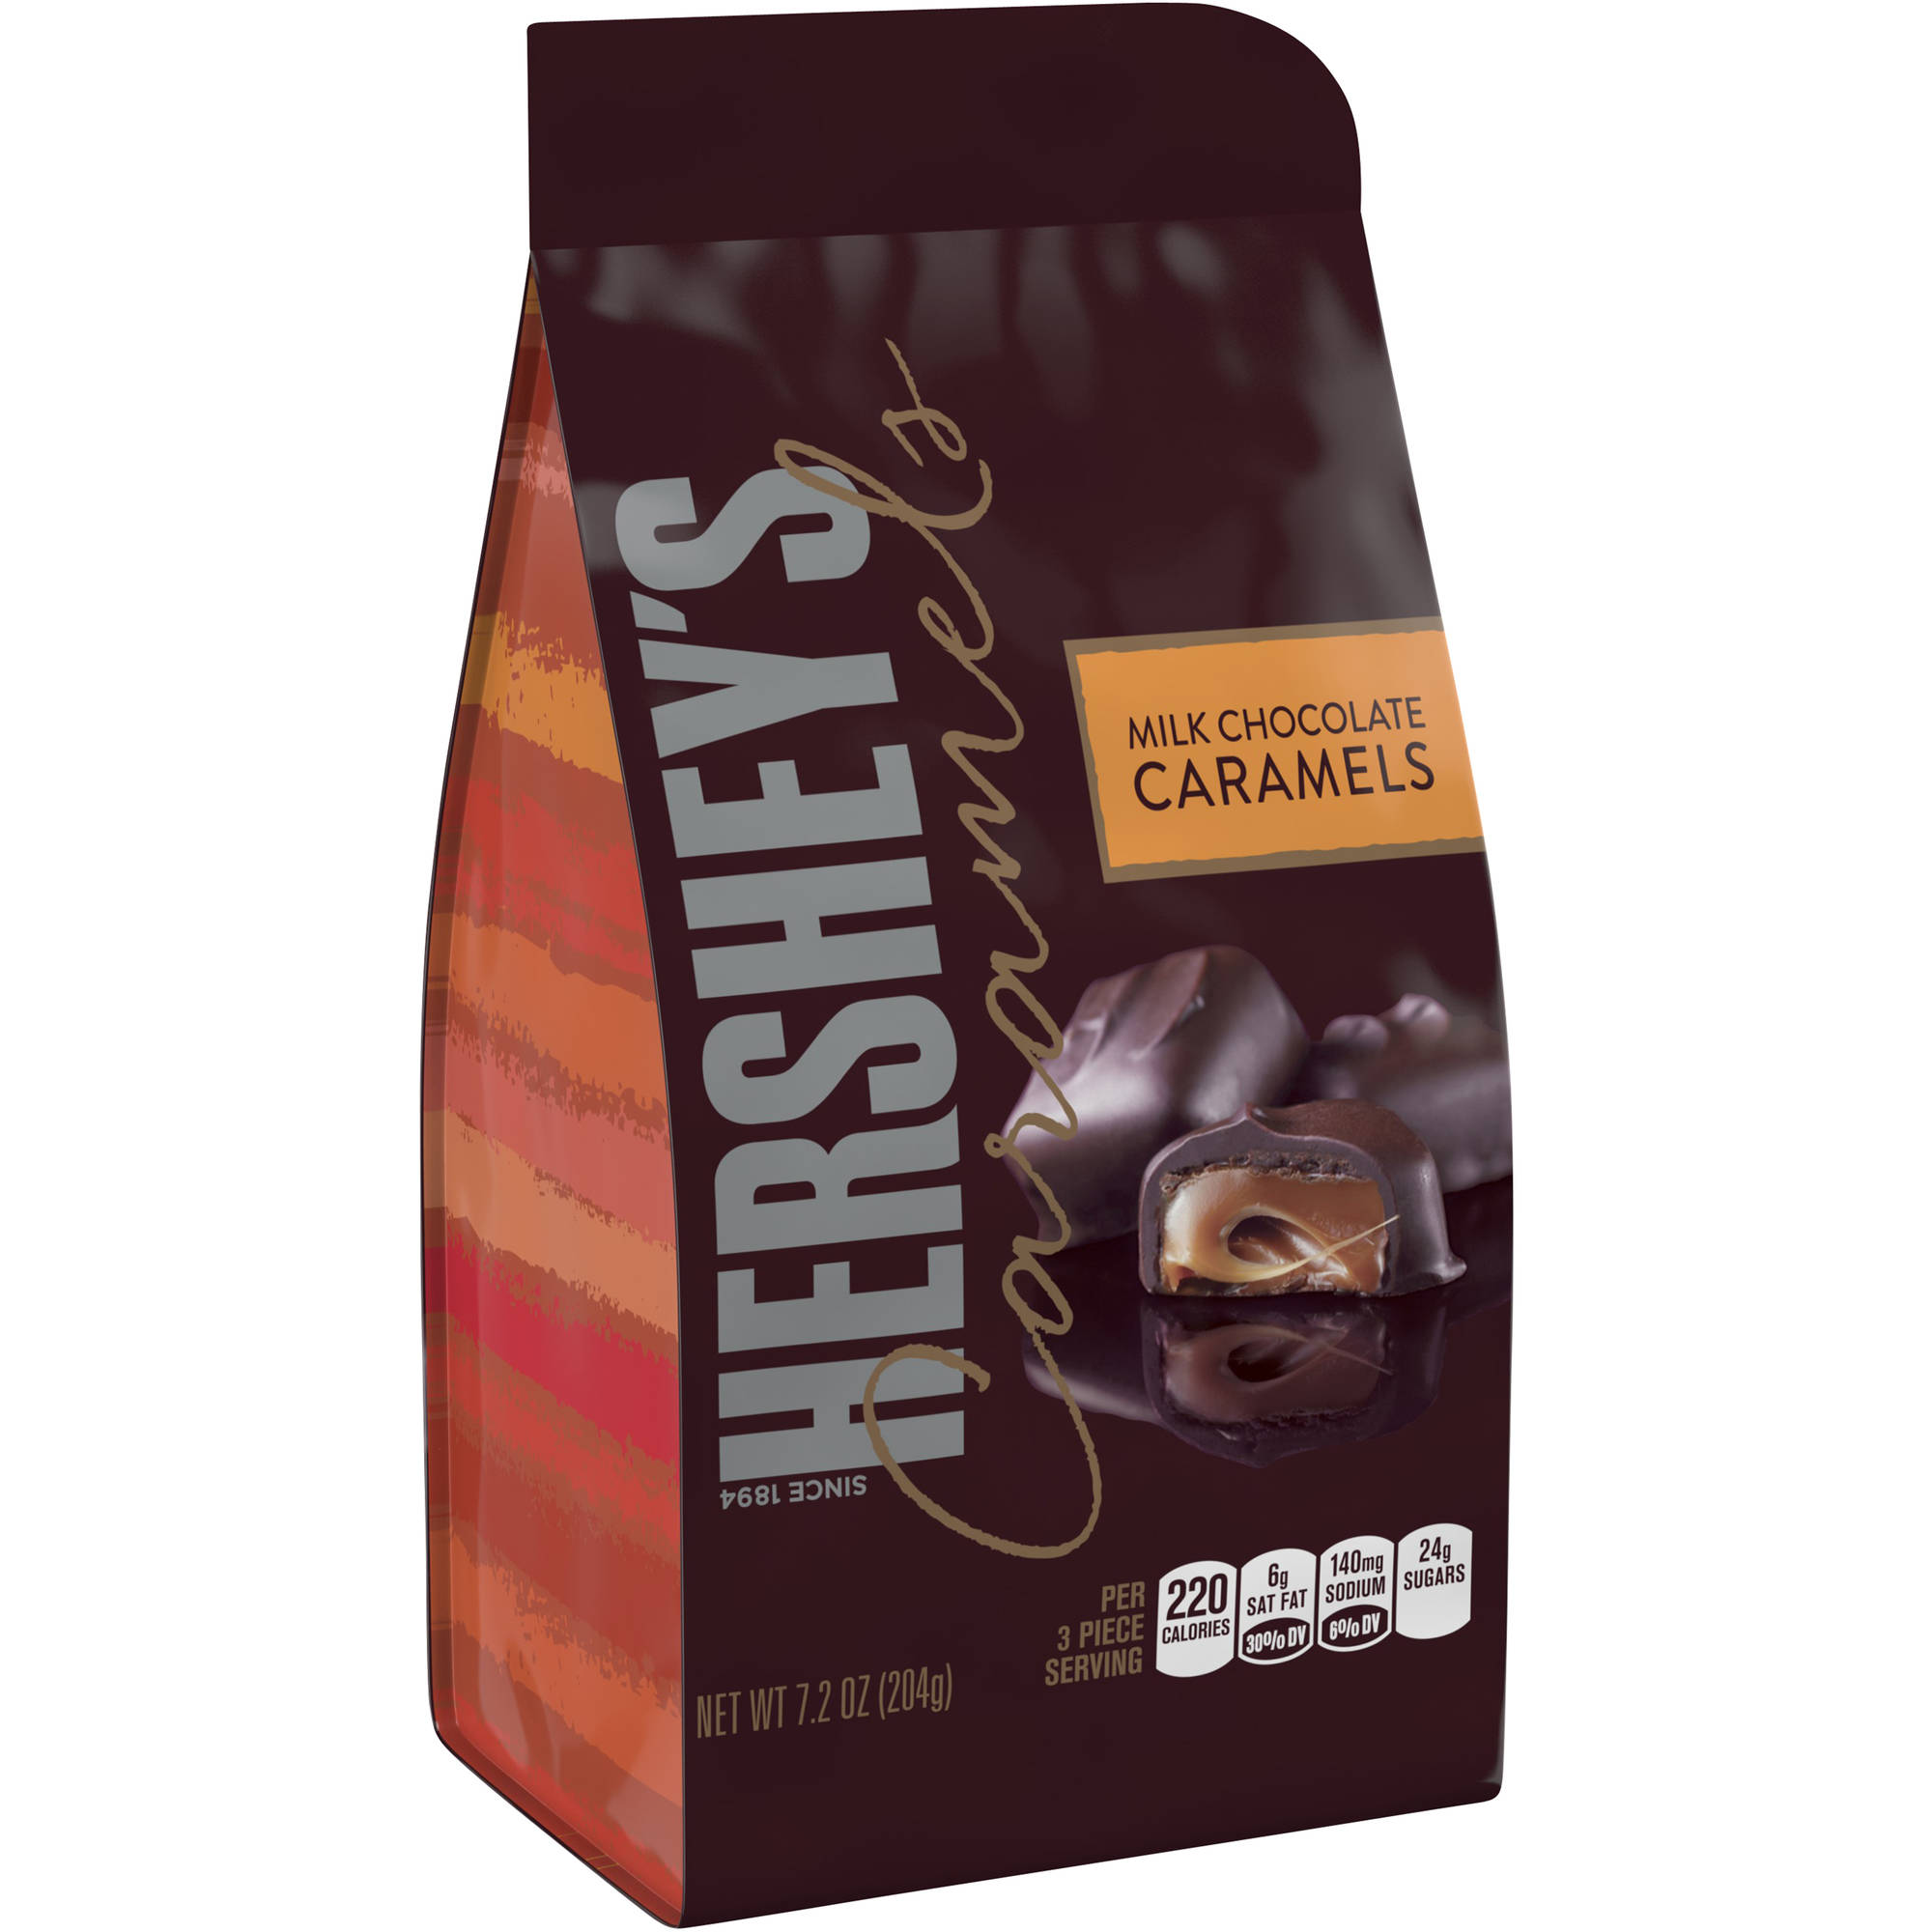 Hershey's Milk Chocolate Caramels Candy, 7.2 oz